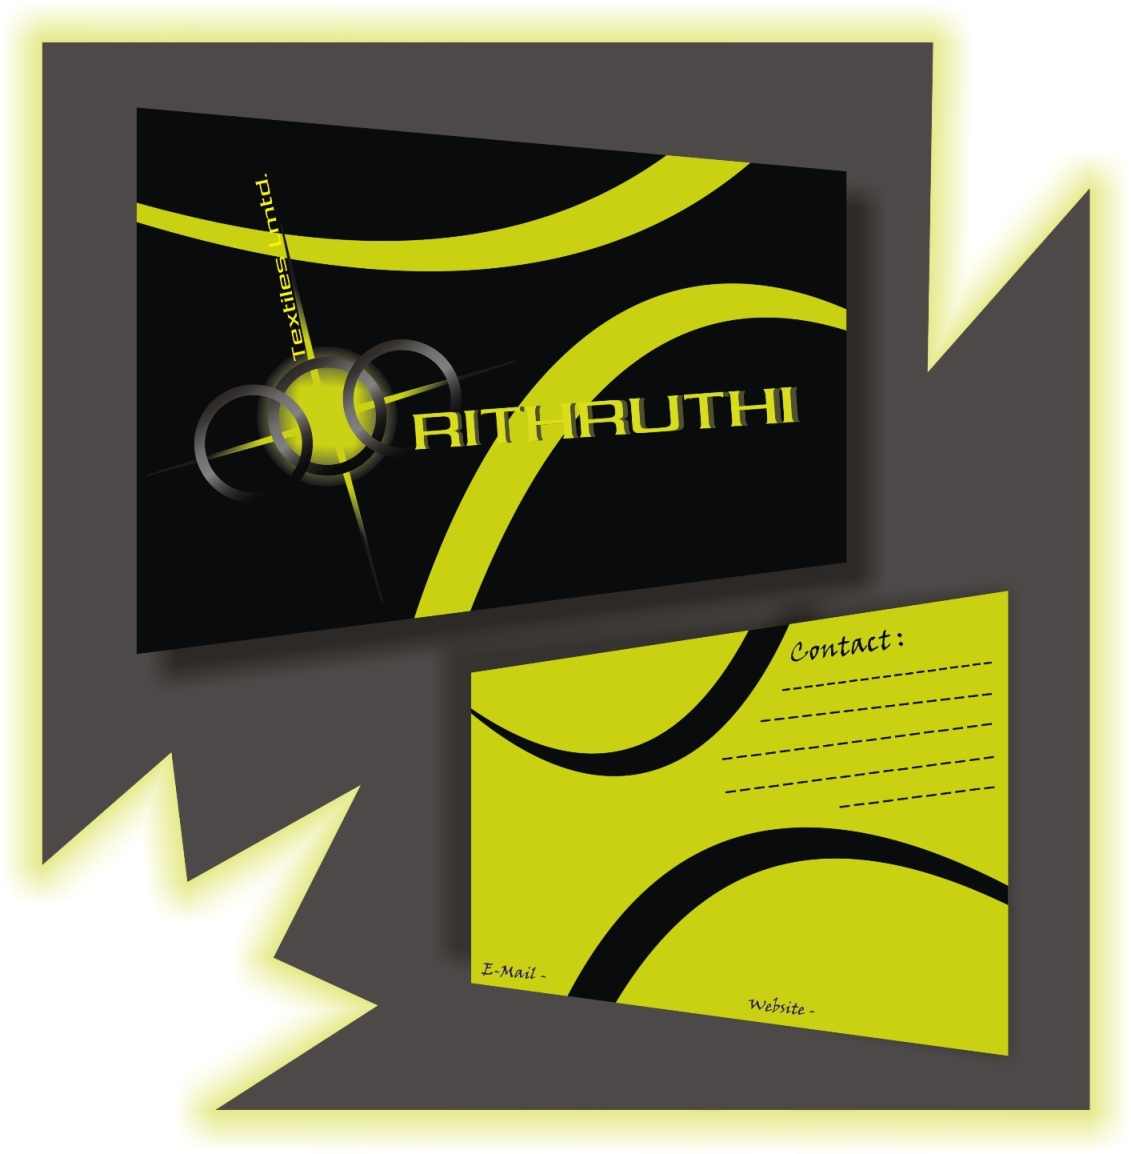 V card background images - More Bright Tiwi Green Color Card With Vector Flow Design Background Black Color For Front Tiwi Green For Back Side